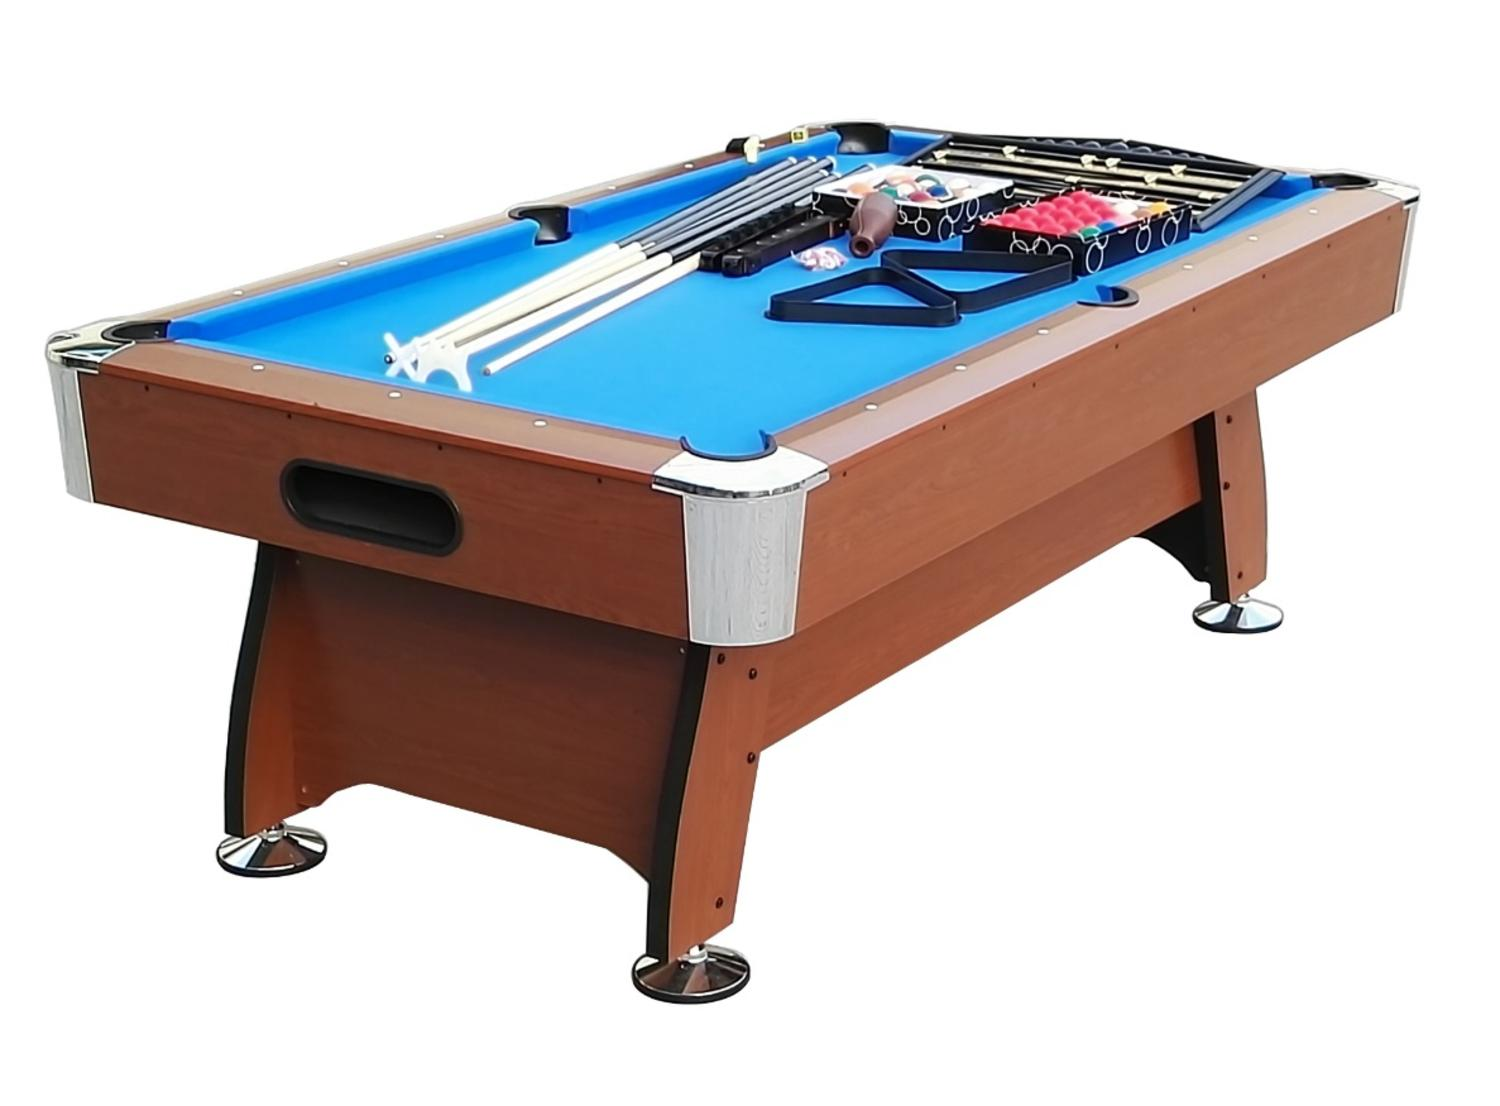 6' x 3.3' Brown and Blue Deluxe Billiard Pool and Snooker GAME Table